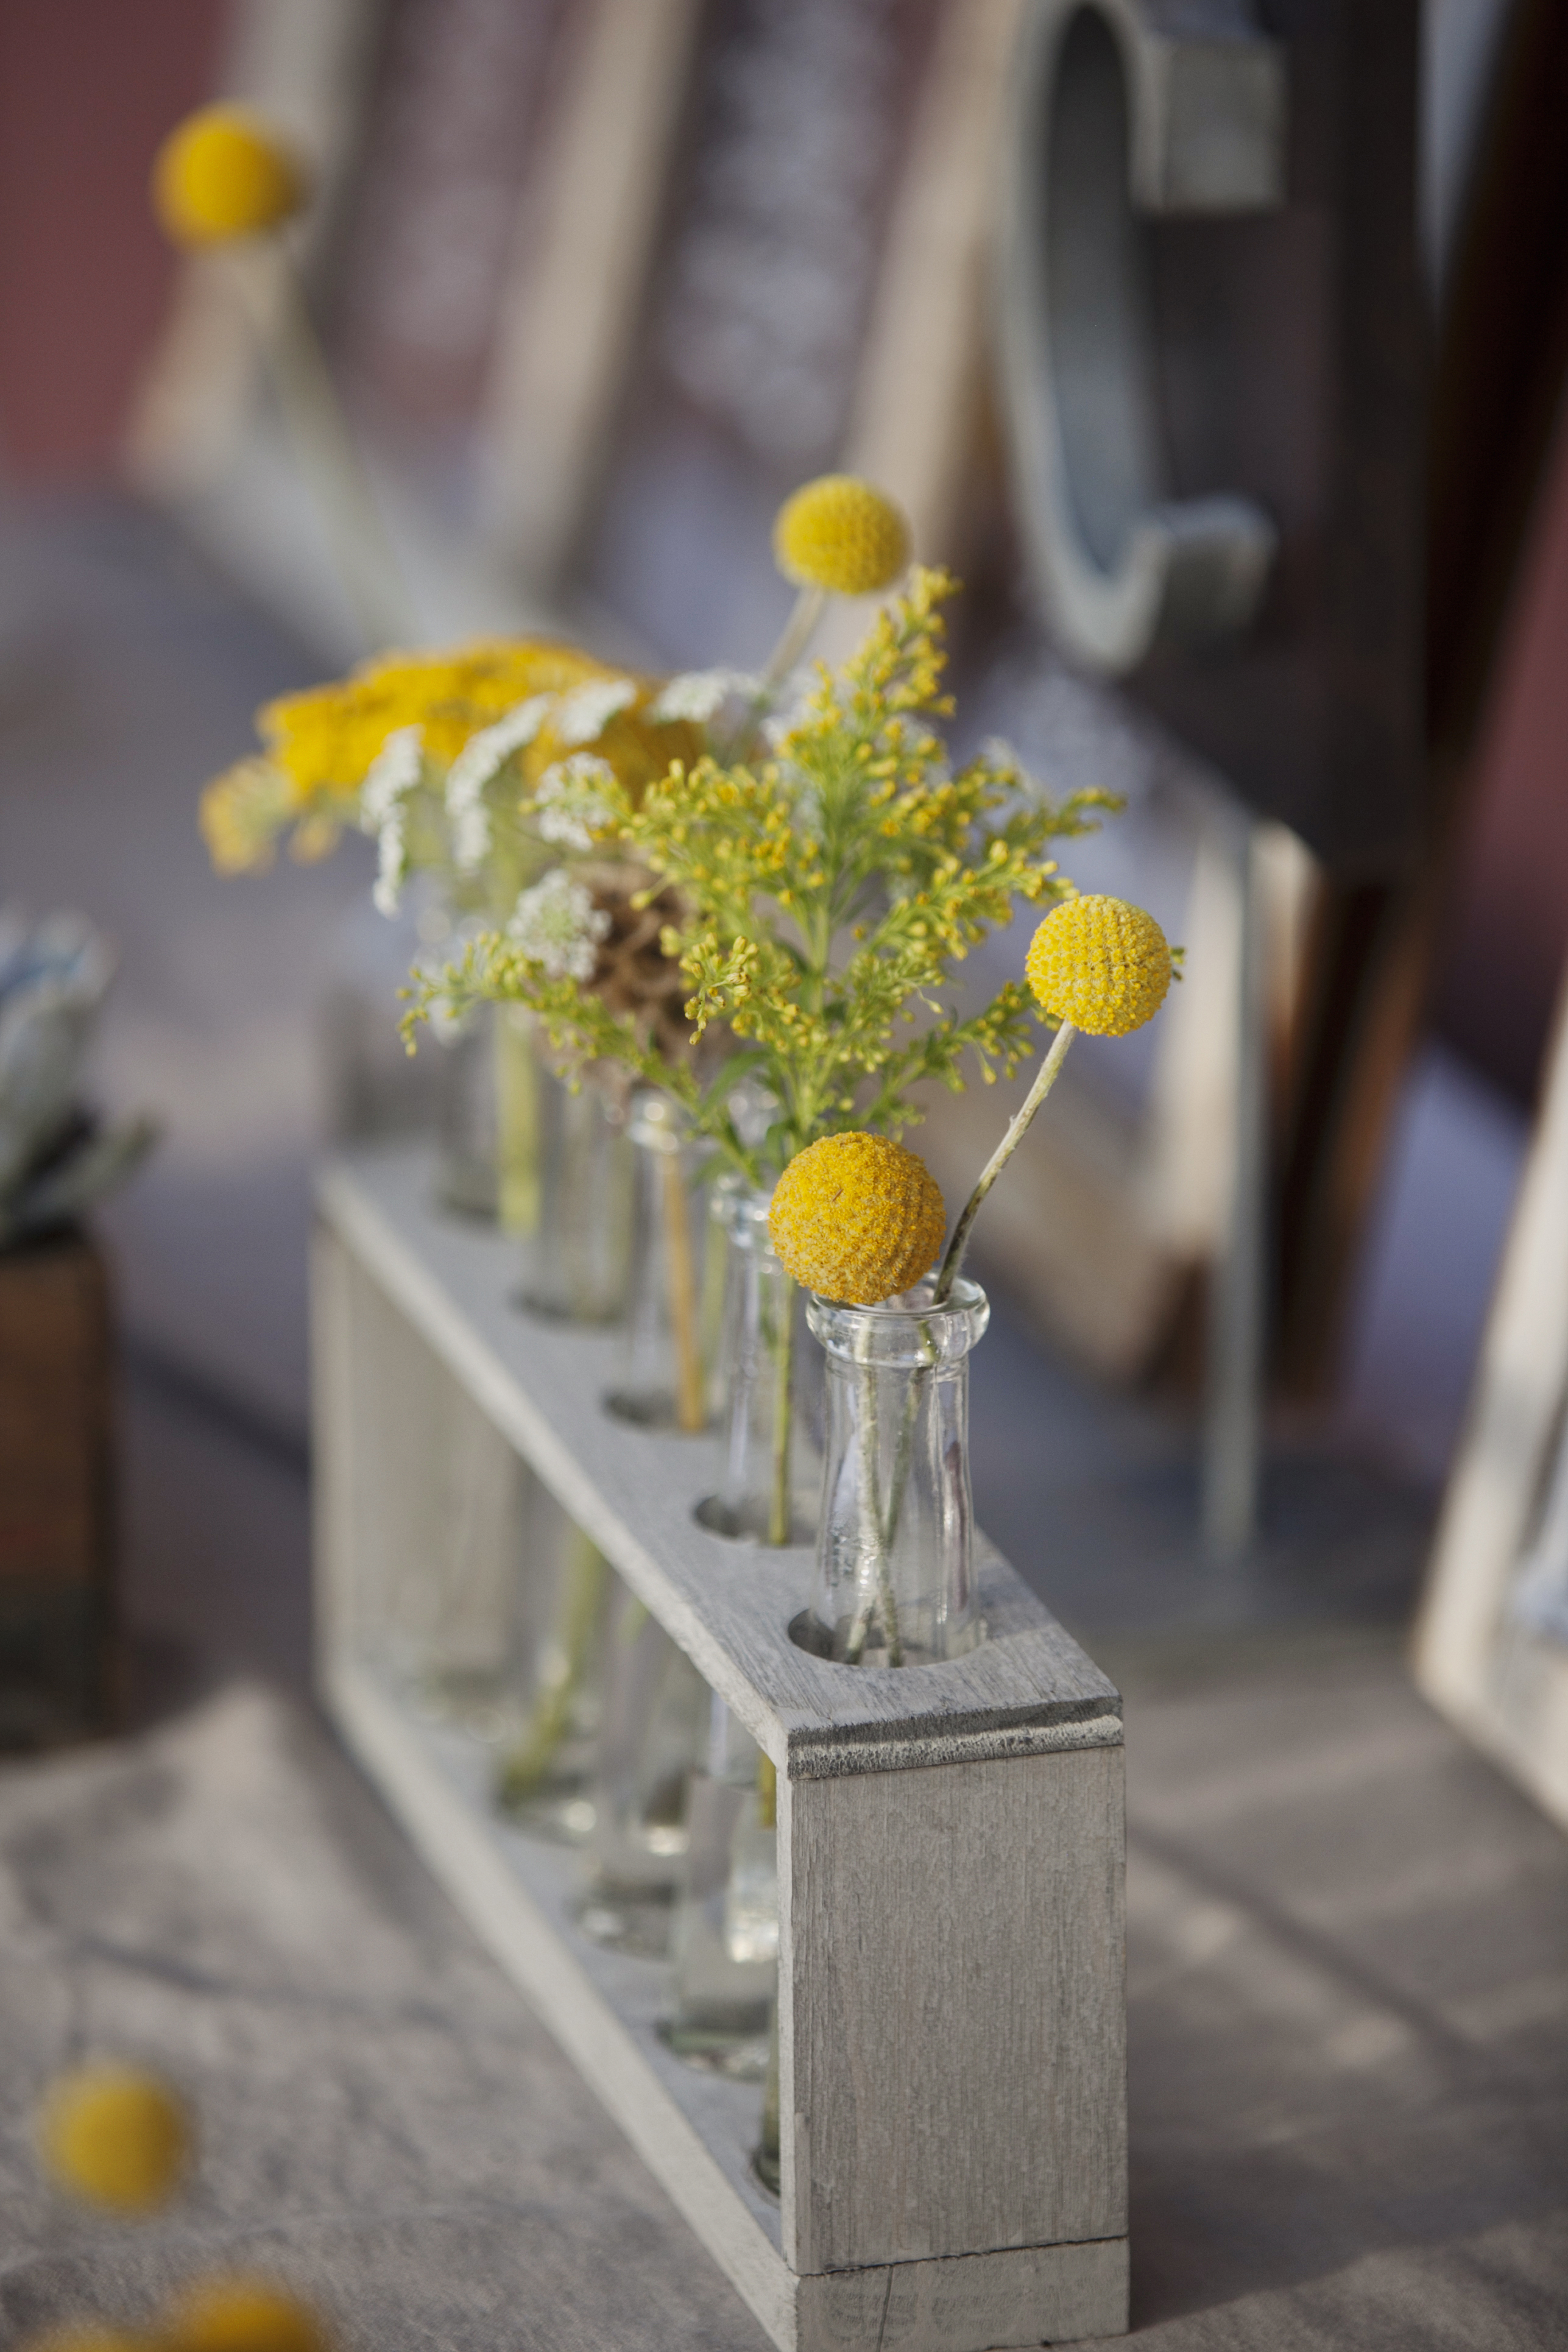 Flowers & Decor, Decor, white, yellow, Vases, Billy, Balls, Andrea eric